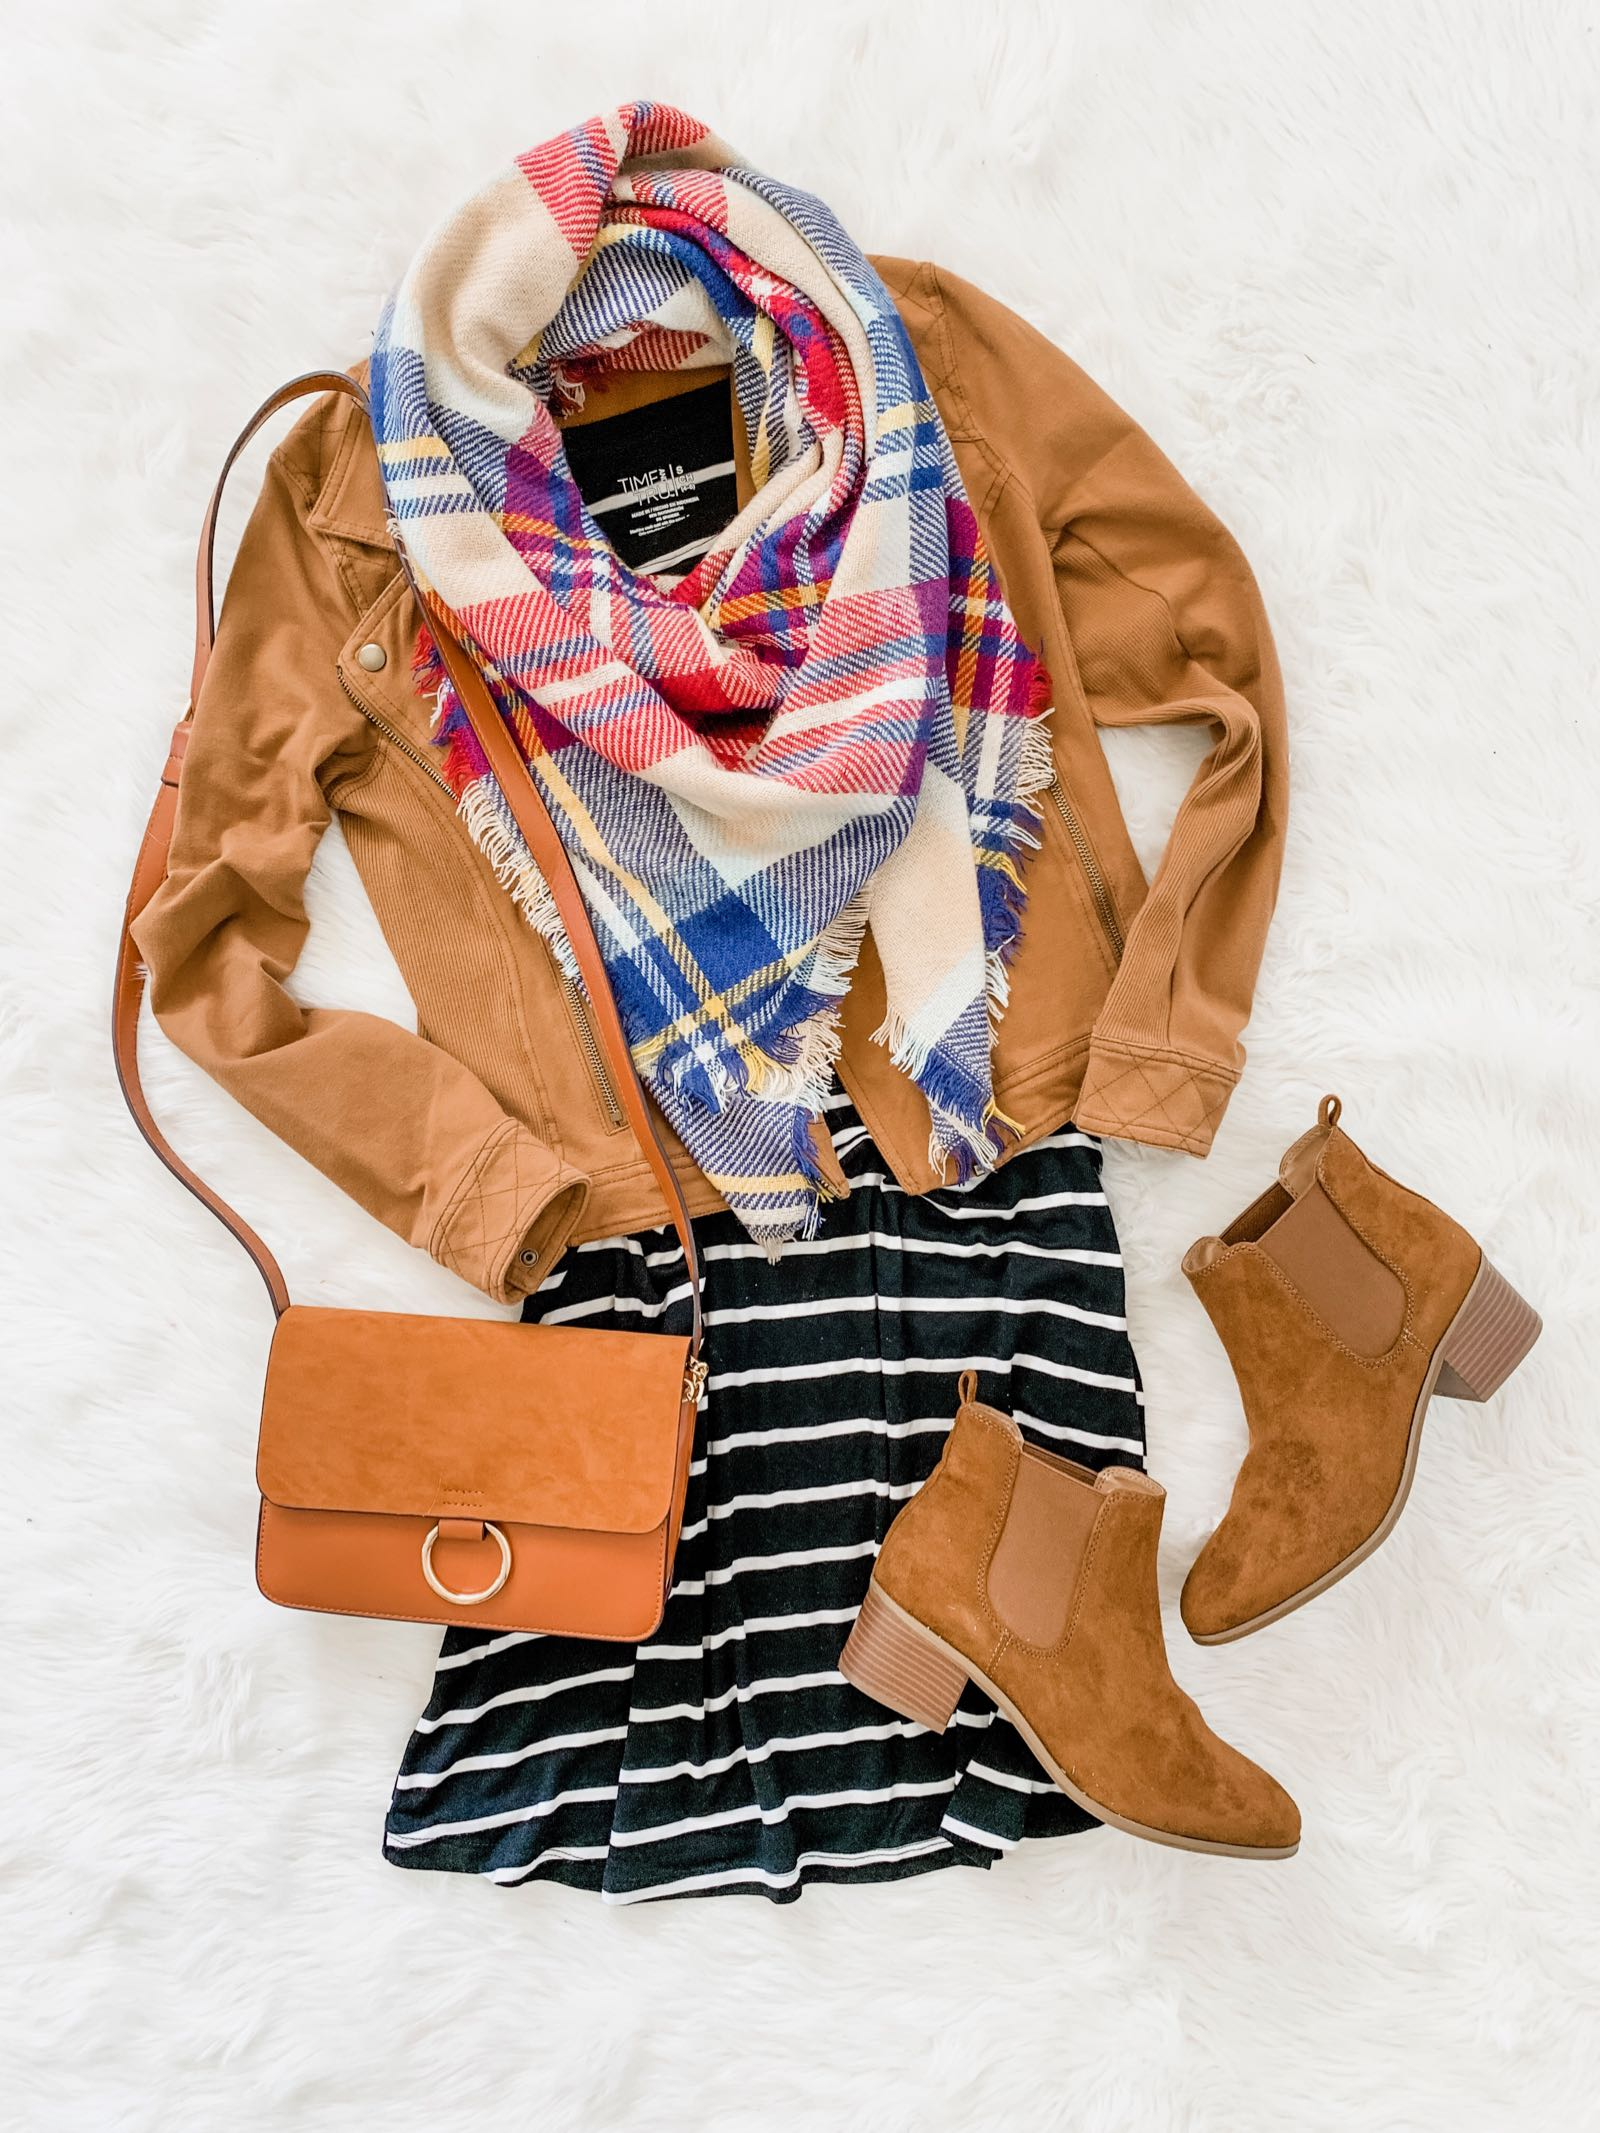 Stripe dress, camel moto jacket, plaid blanket scarf and ankle booties outfit idea for fall